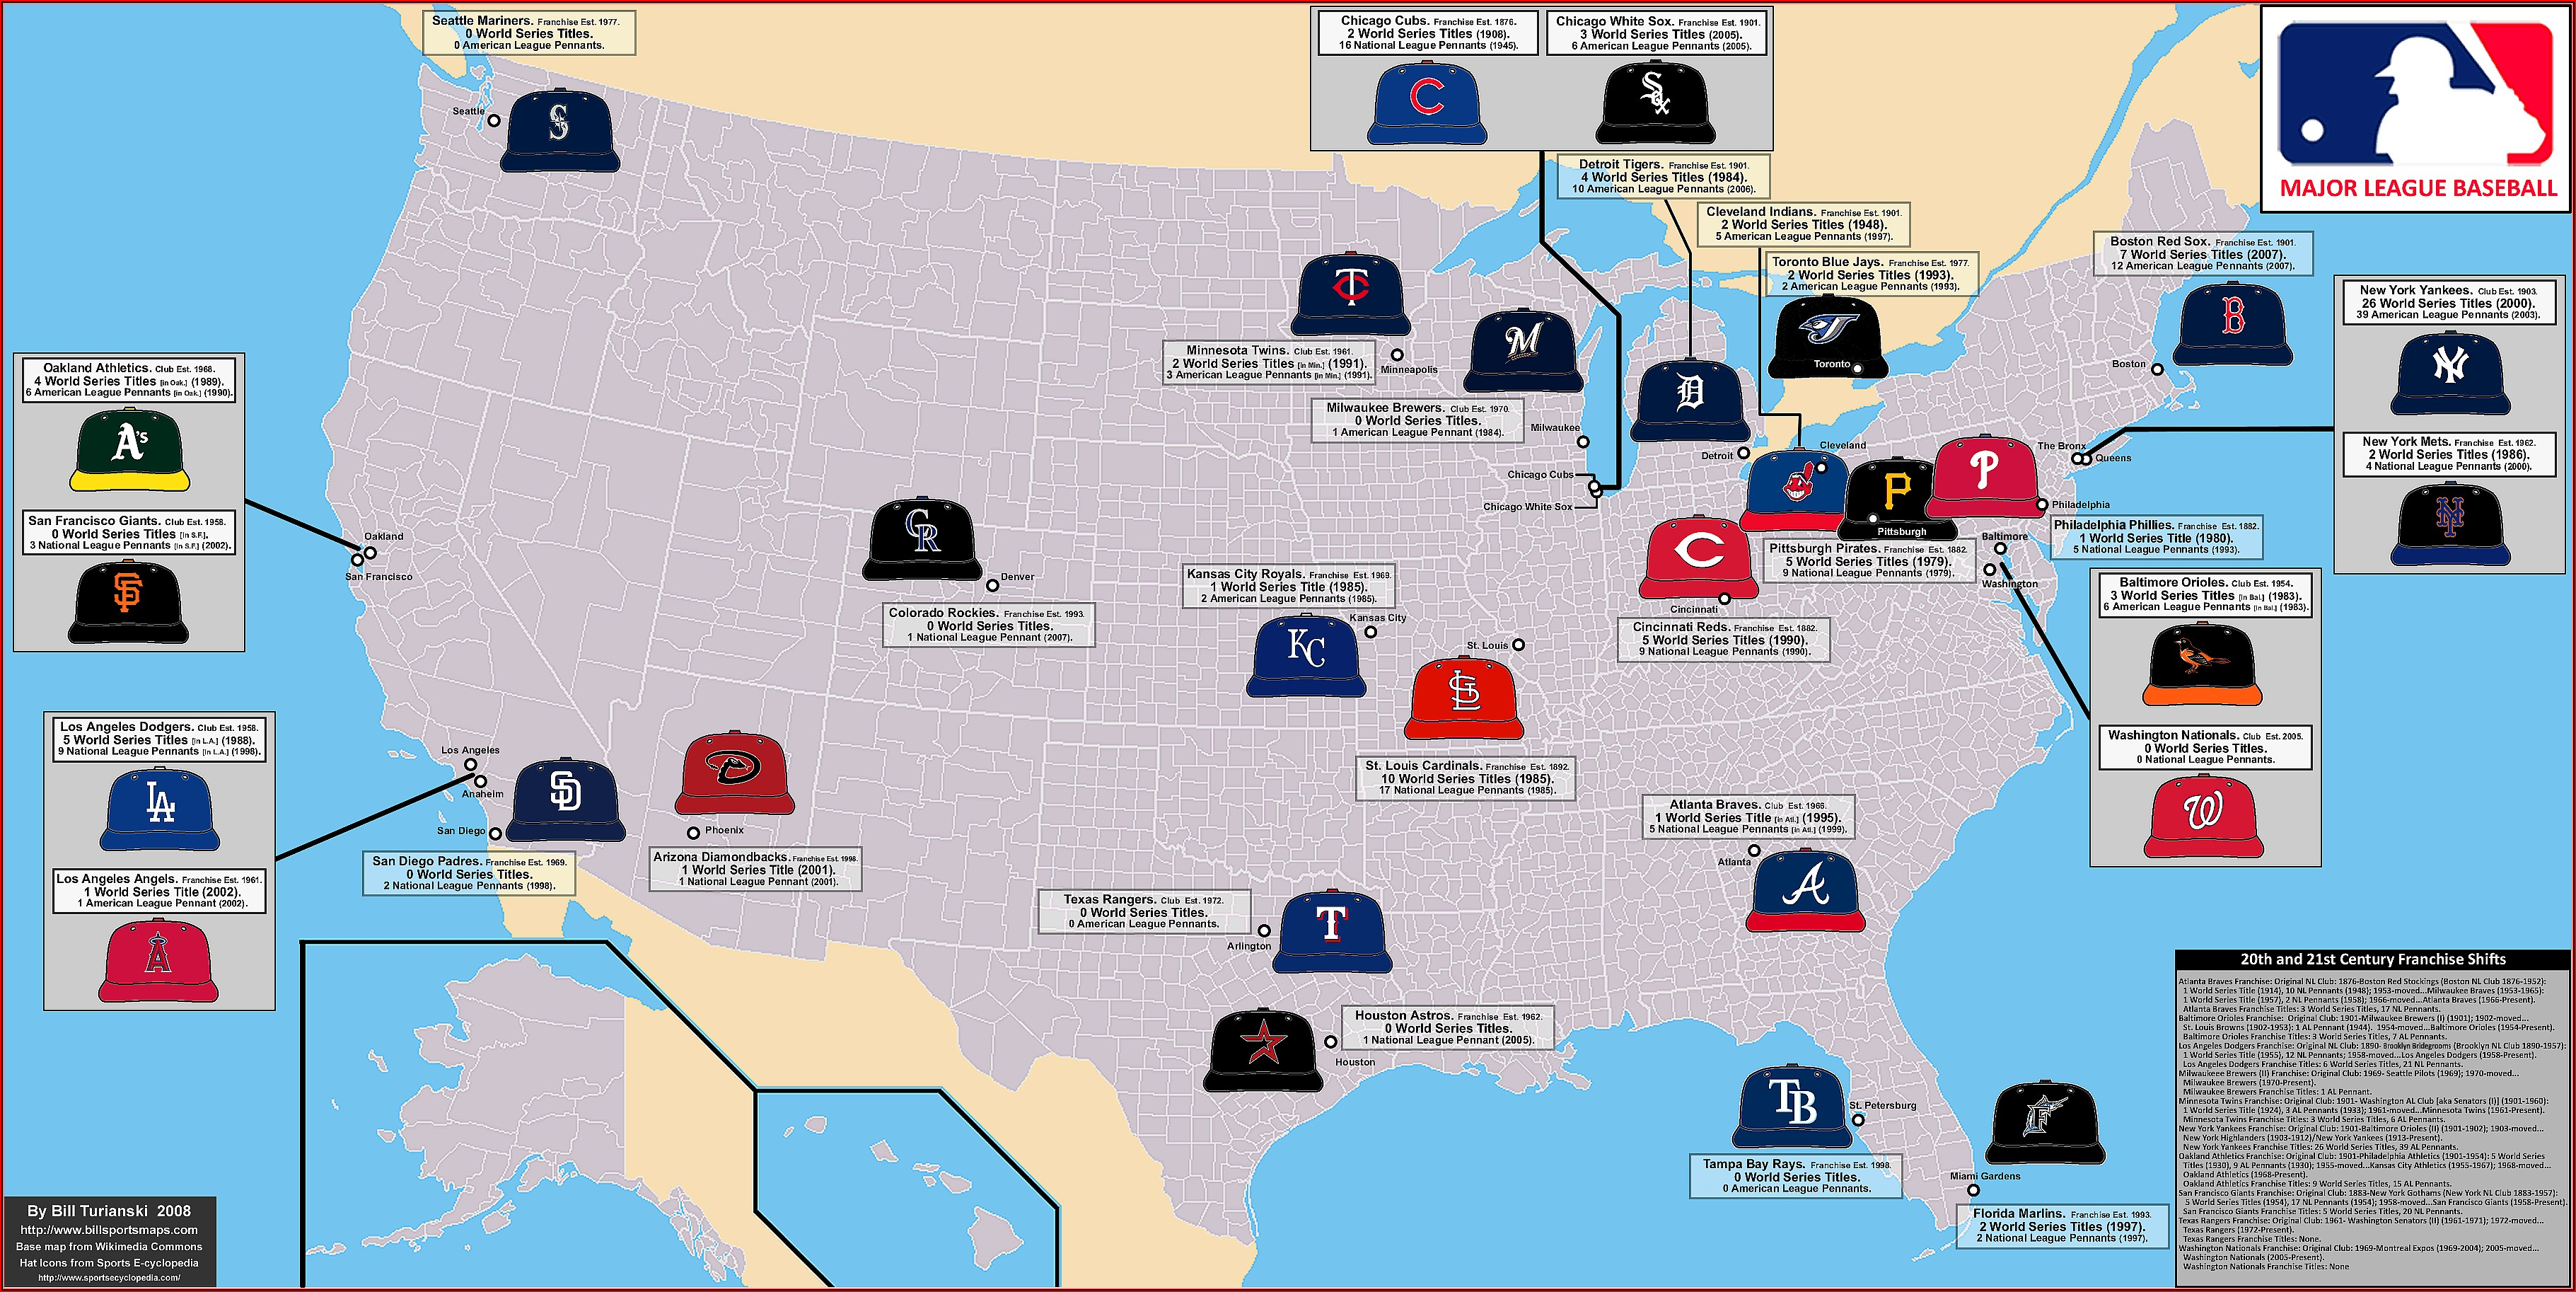 Major League Baseball Cities Map